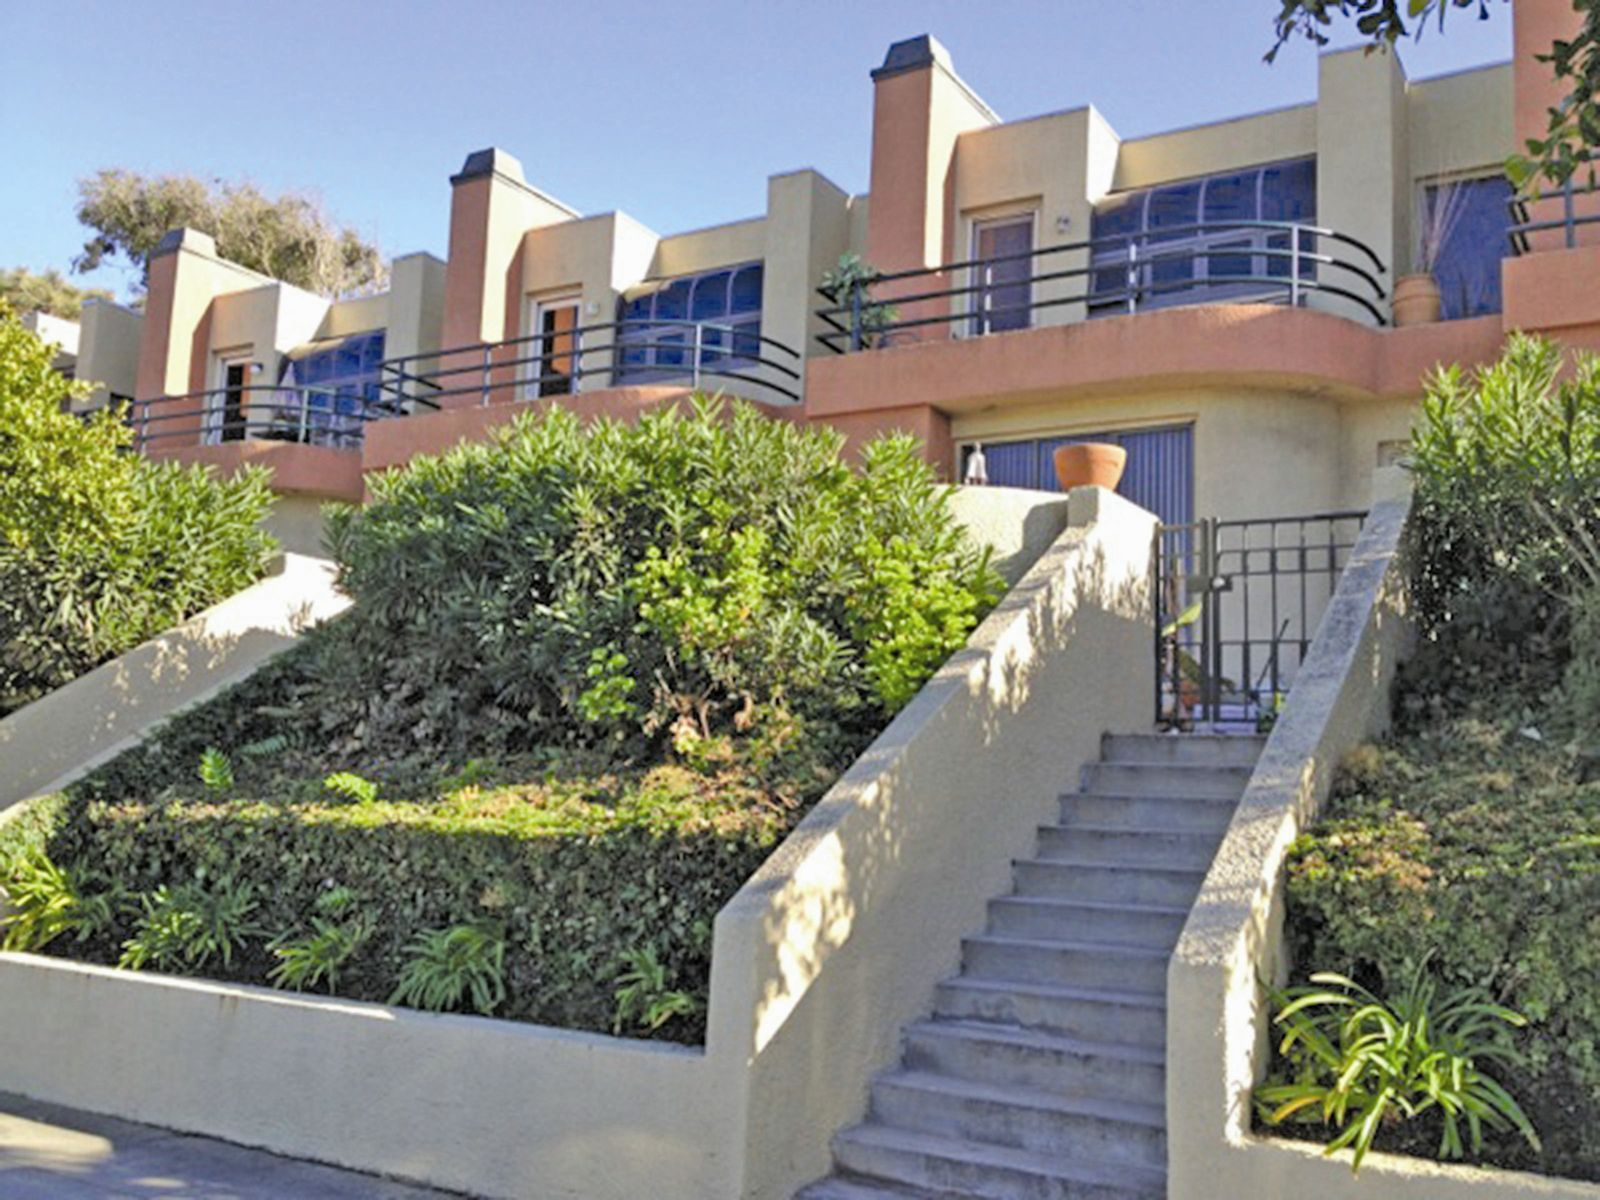 Spacious Tri-level Front-facing Townhome, Playa Del Rey CA Townhouse - Los Angeles Real Estate